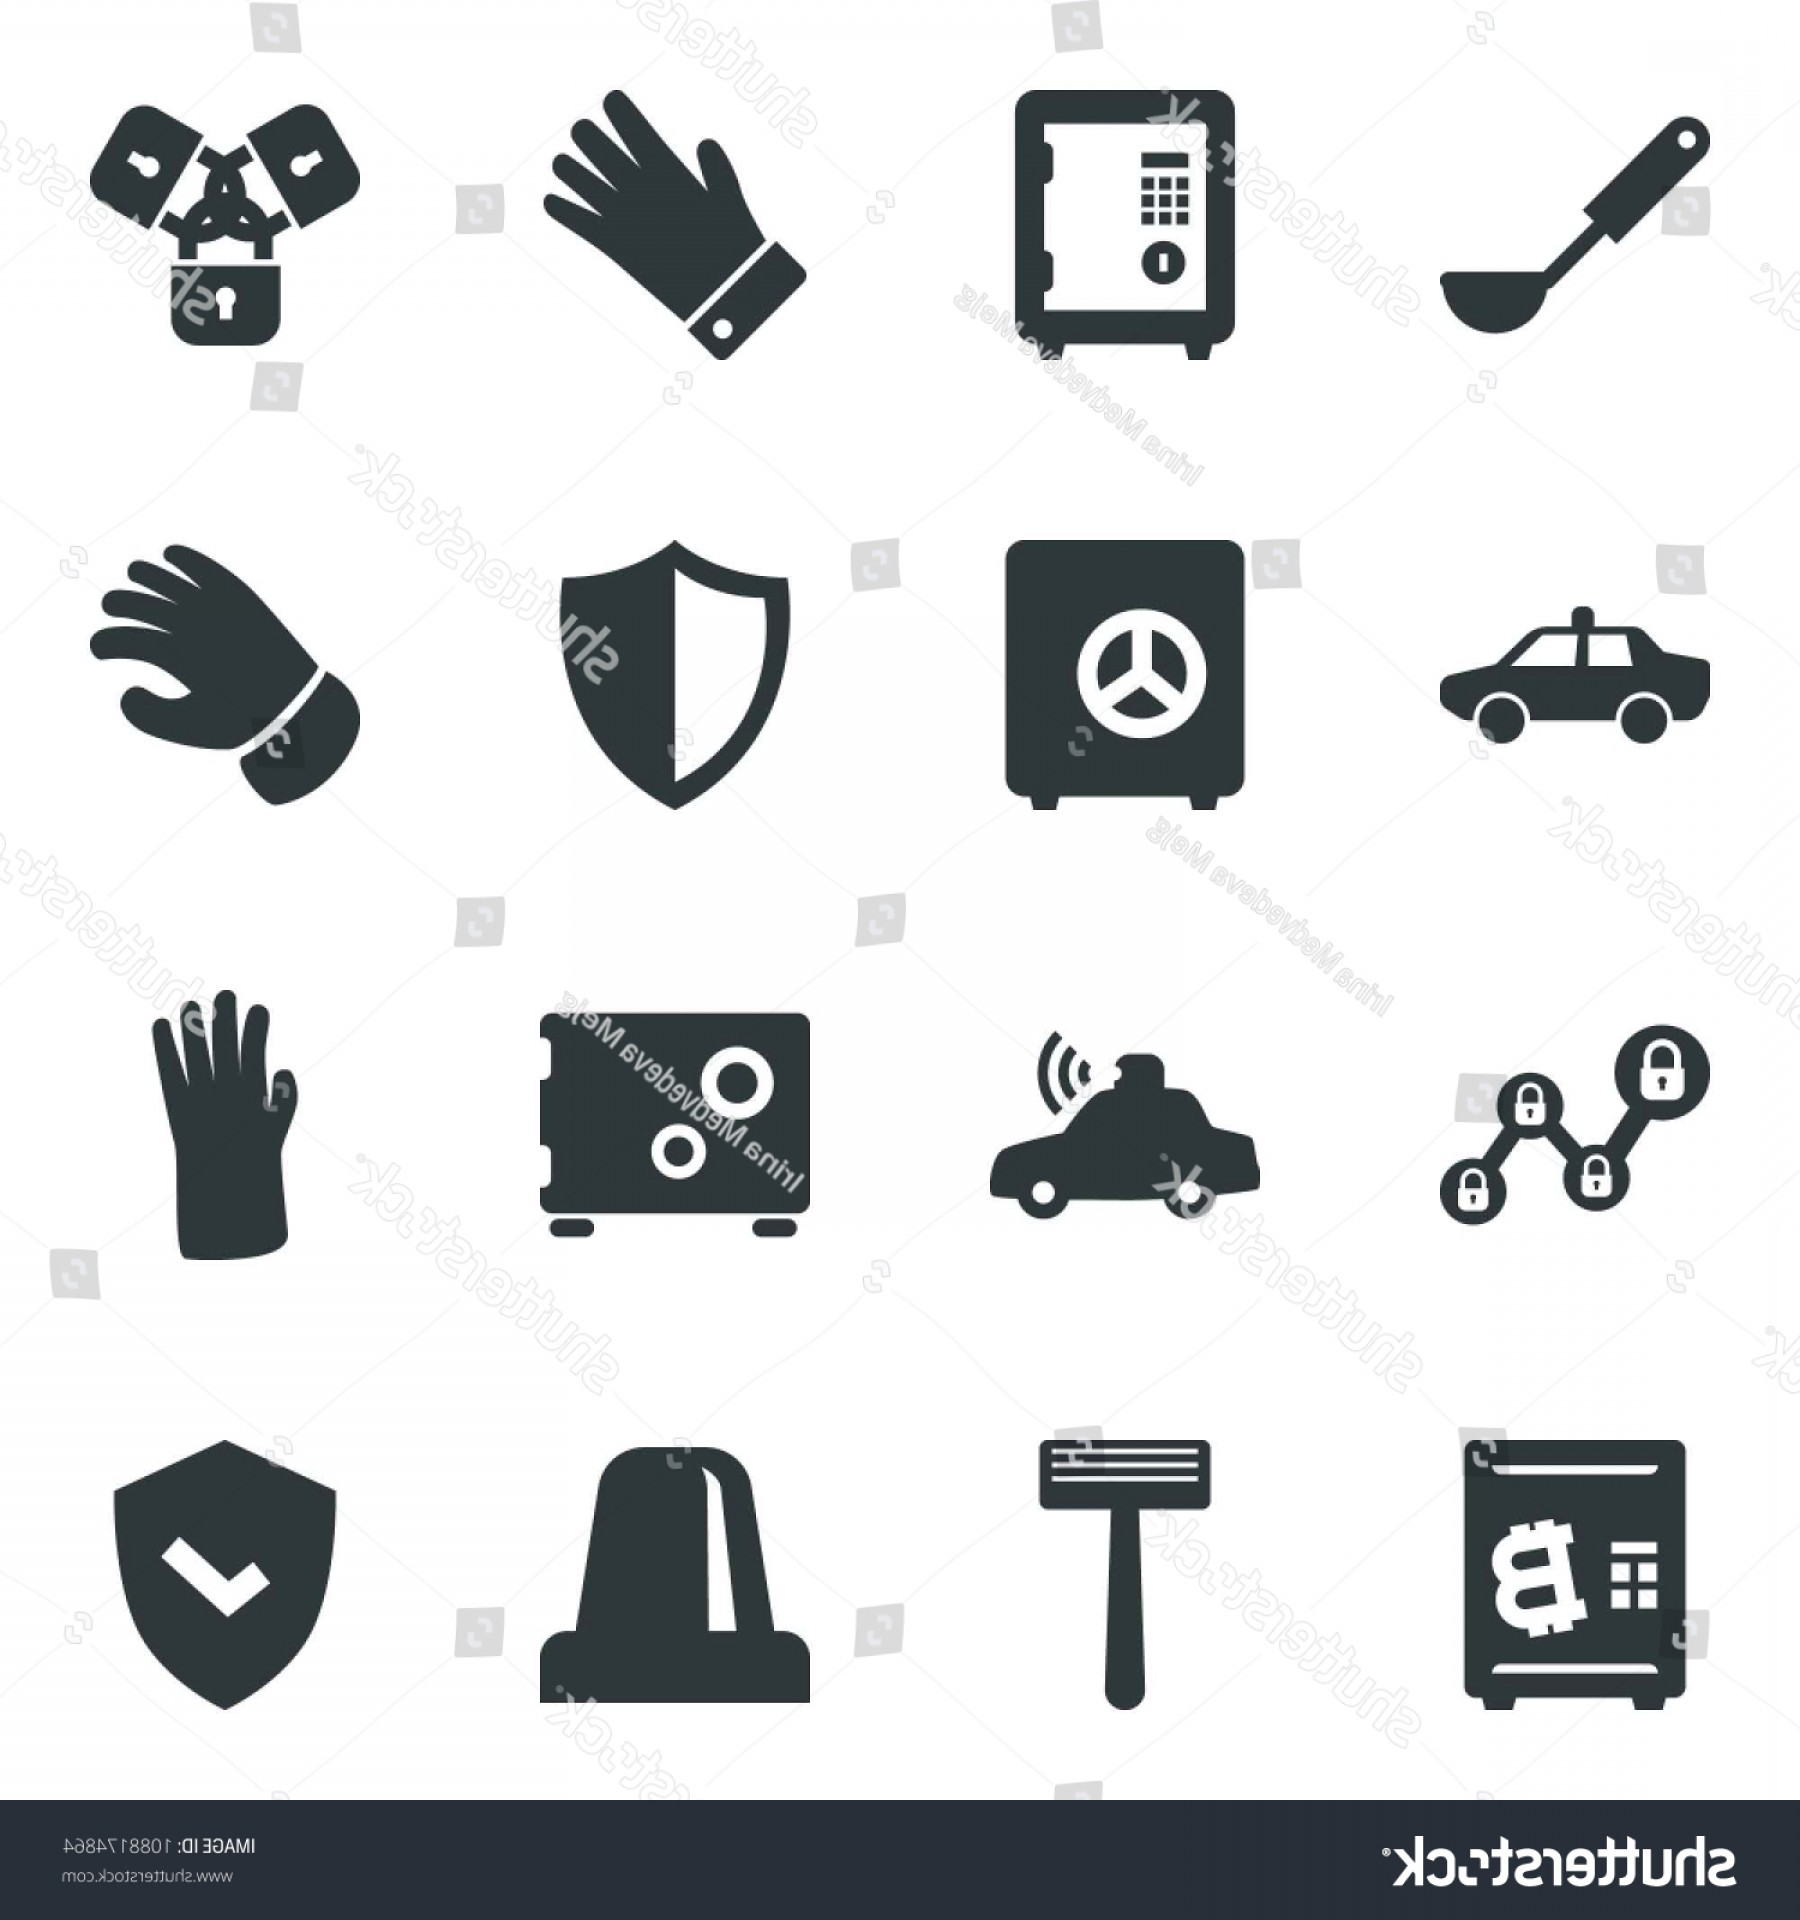 Chain And Lock Glove Vector: Black Vector Icon Set Alarm Car